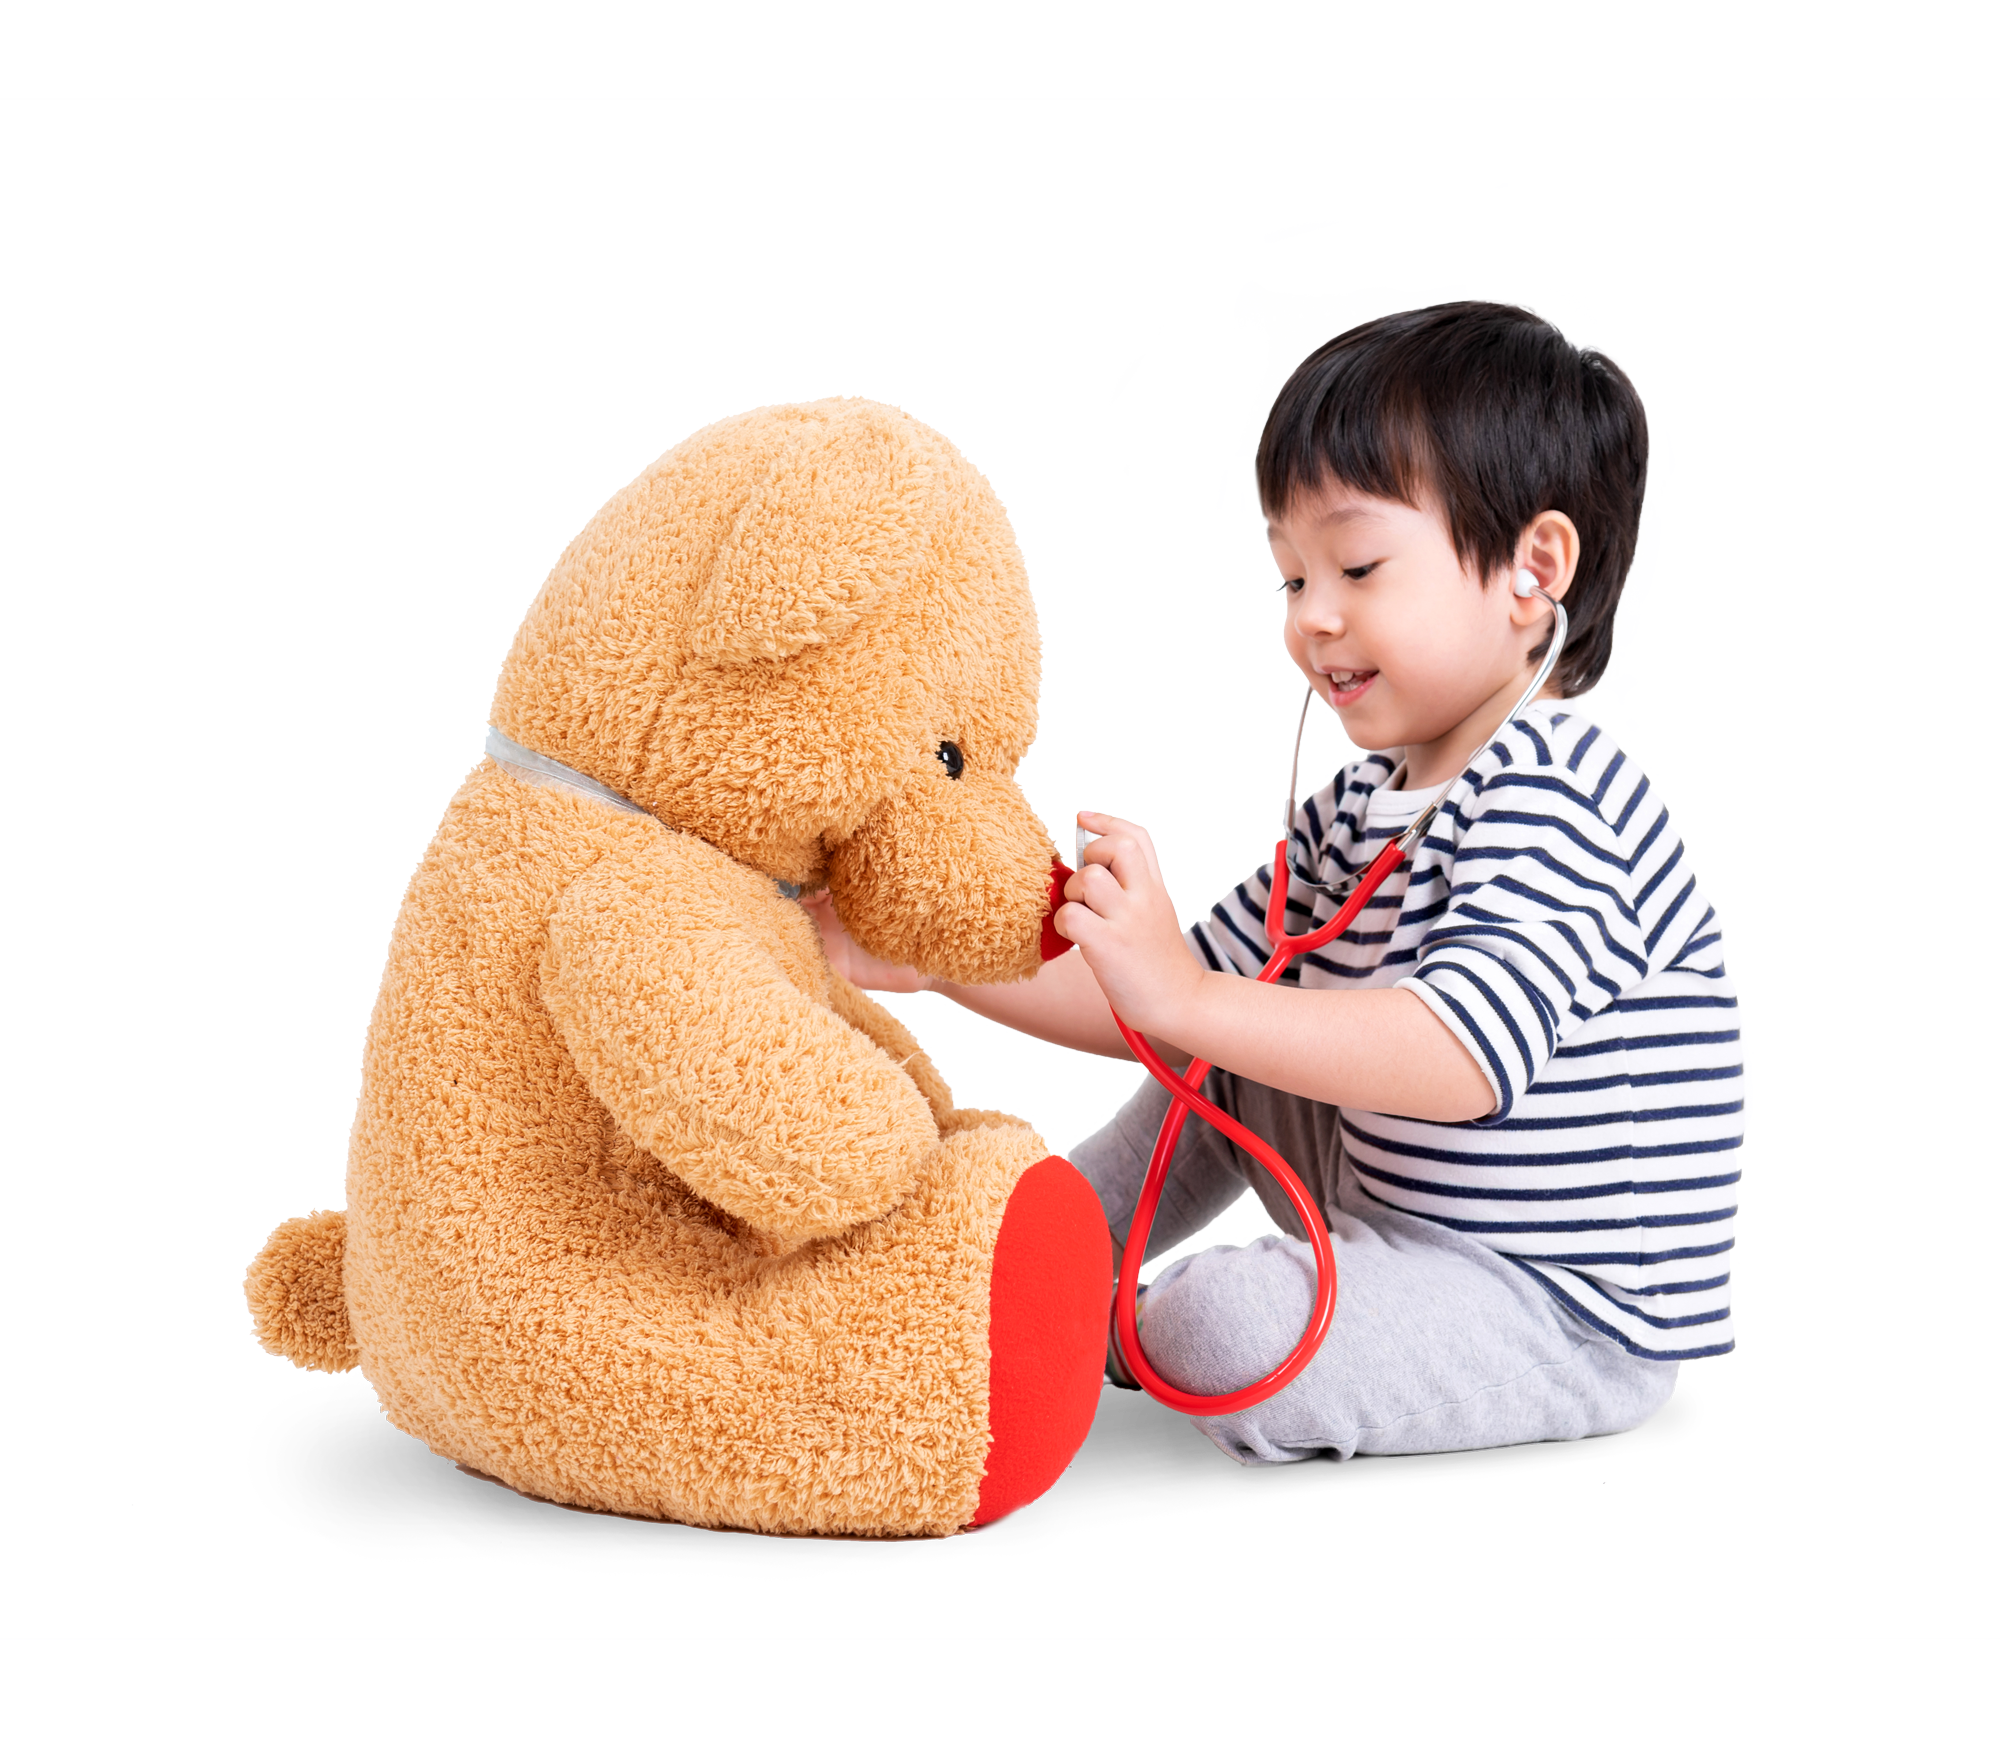 Toddler playing doctors with a teddy bear